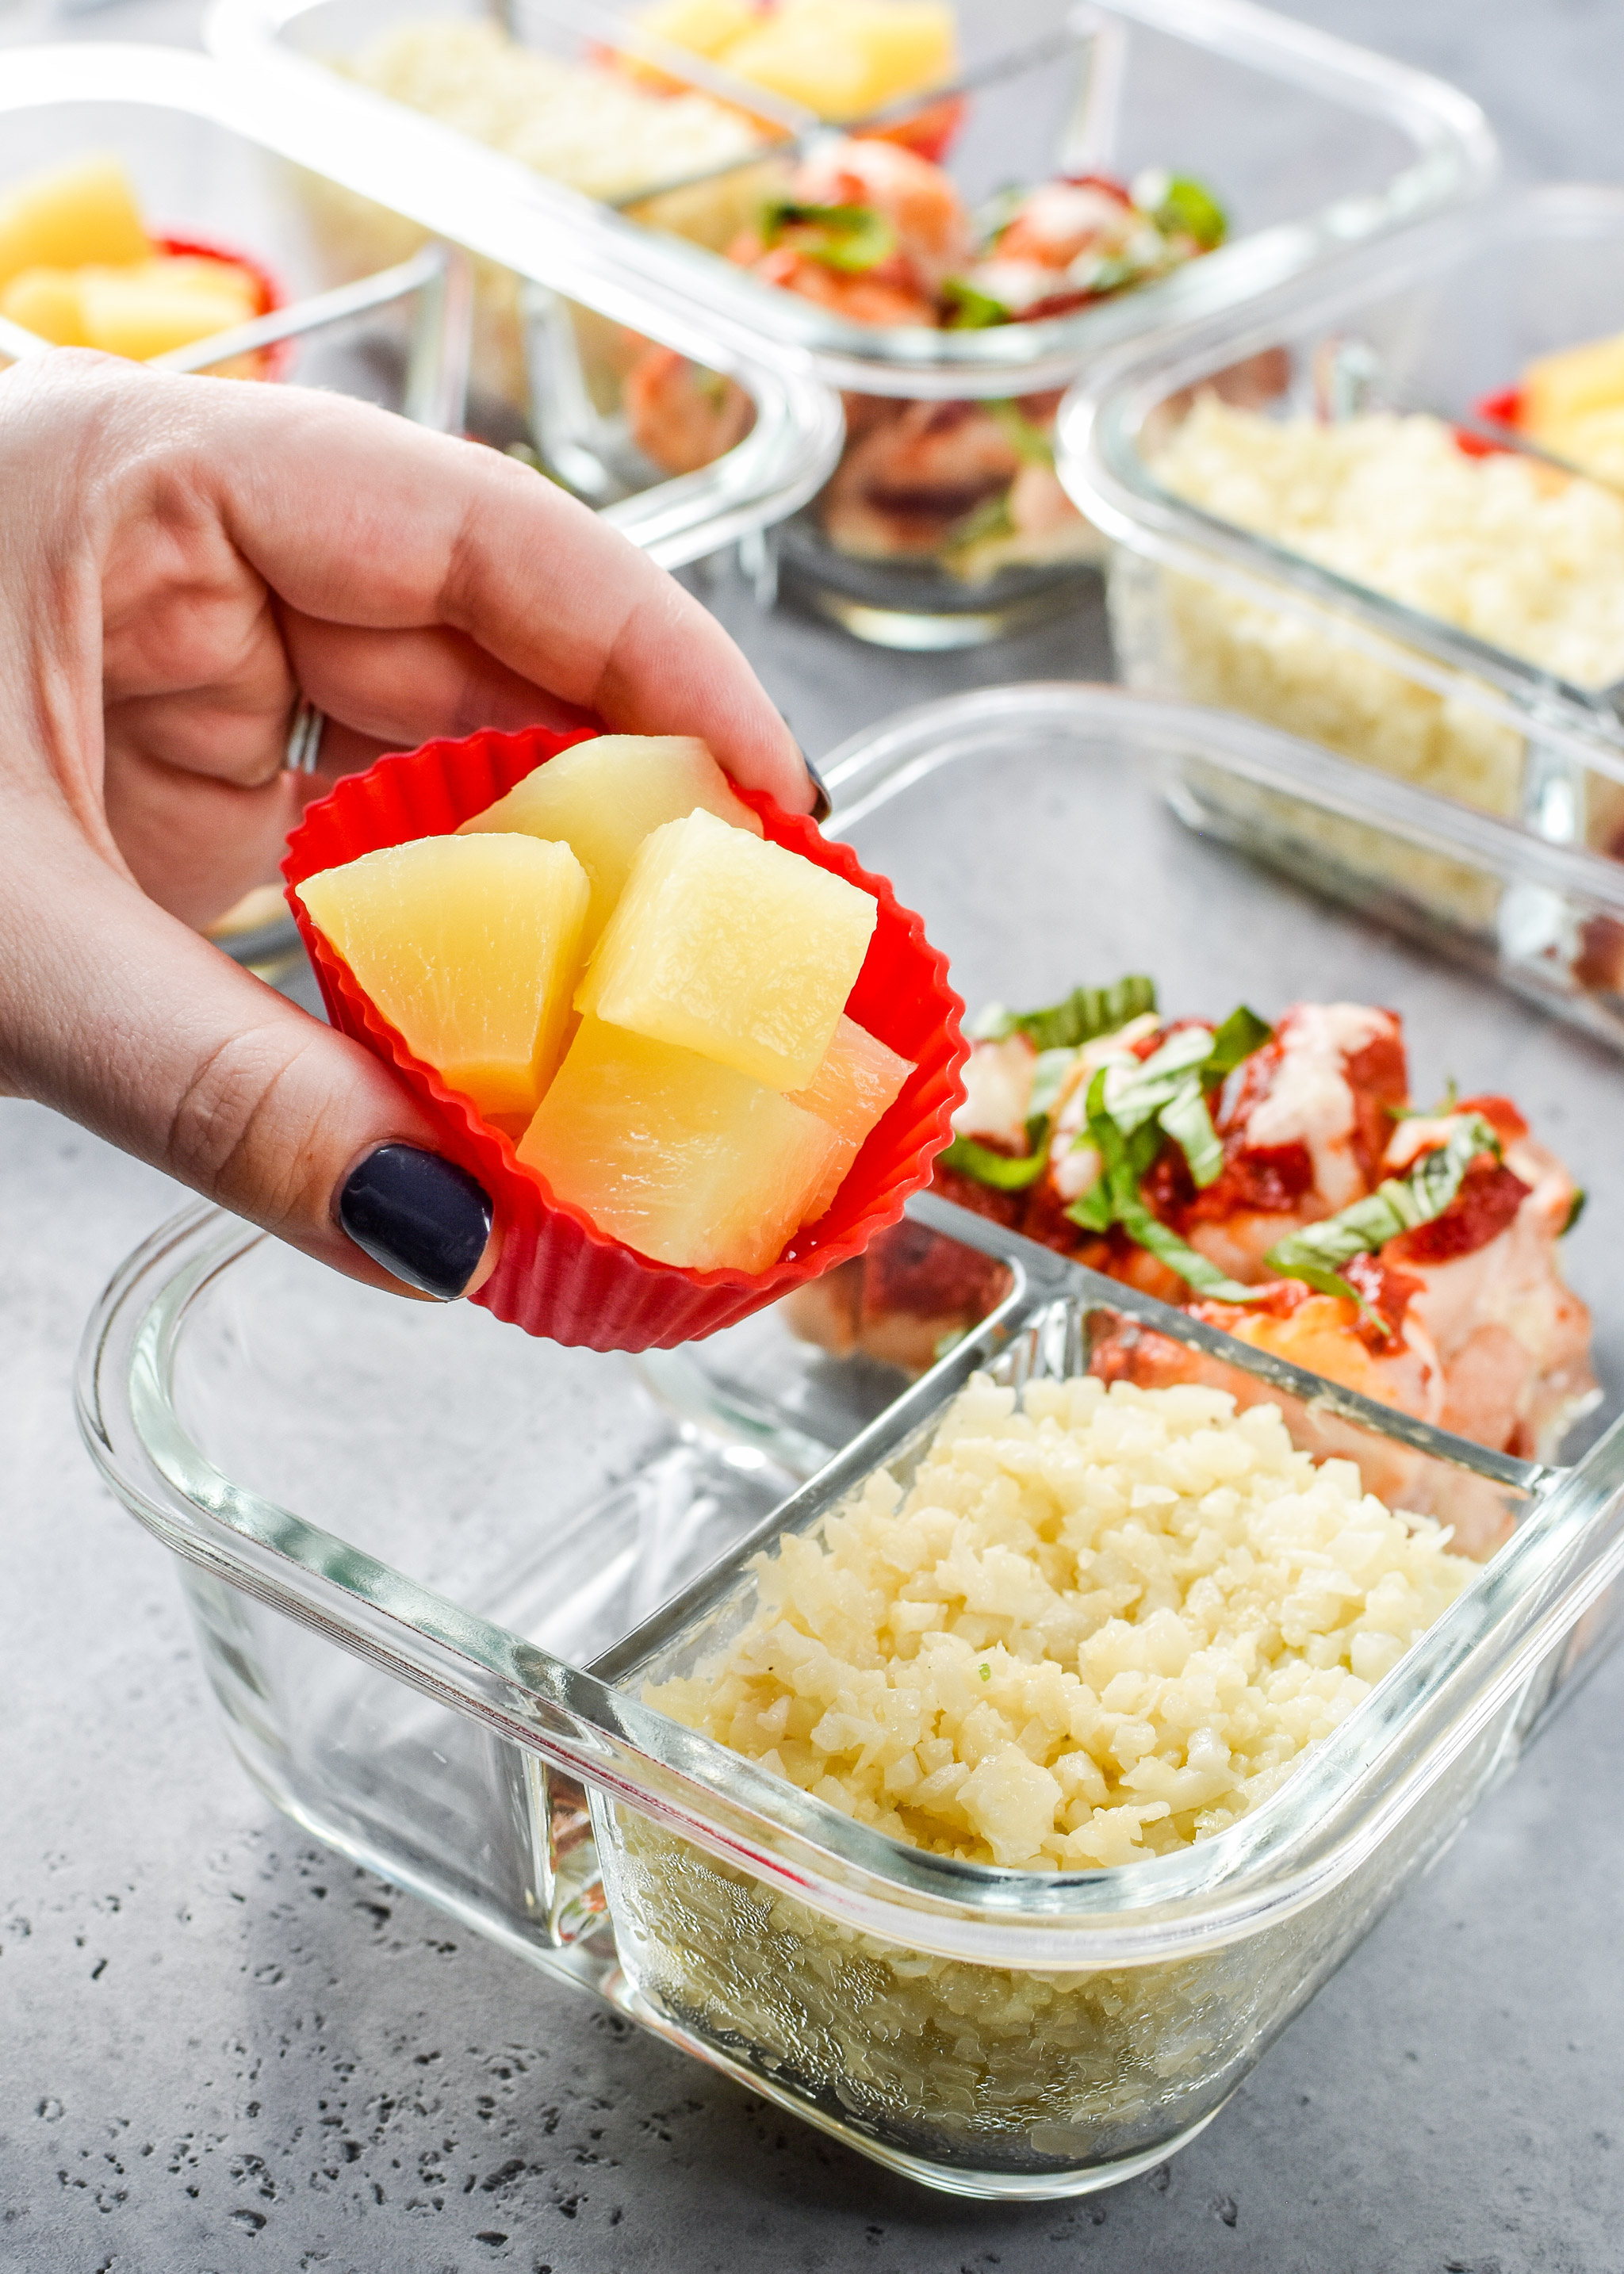 Pizza chicken roll ups meal prep with pineapple inside silicone baking containers for easy removal.